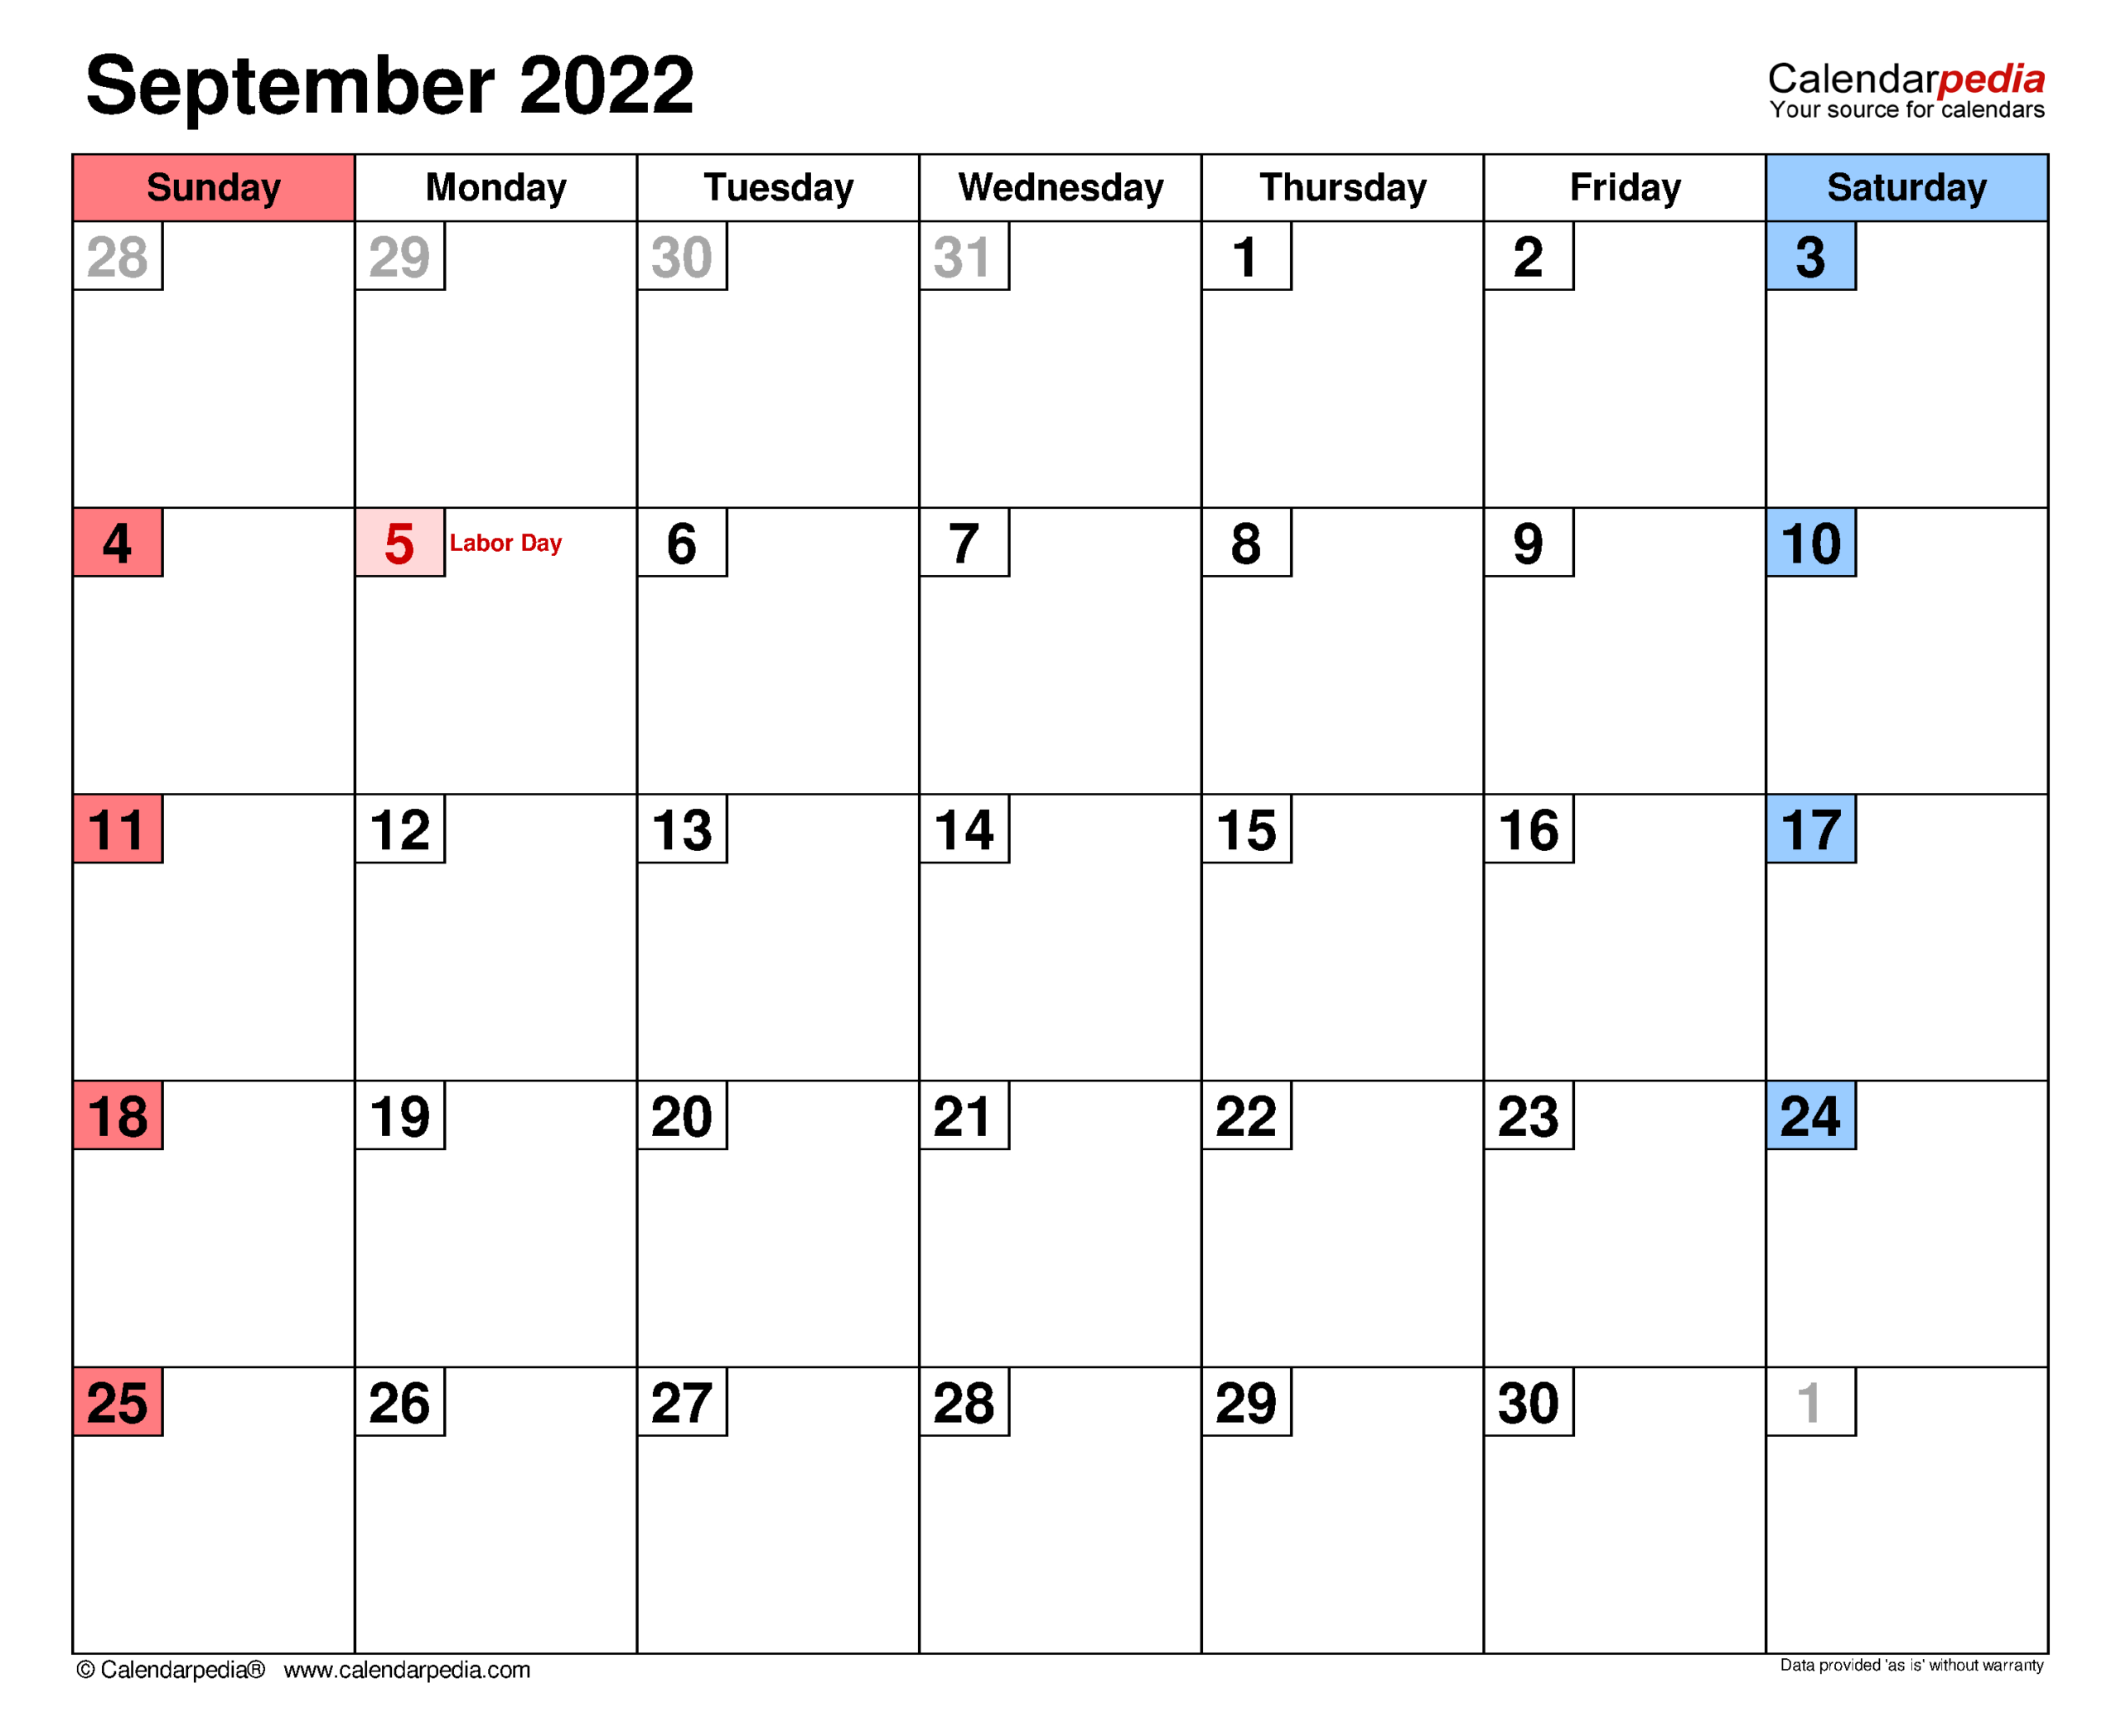 September 2022 Calendar | Templates For Word, Excel And Pdf within Print Month Calendar September 2022 Image